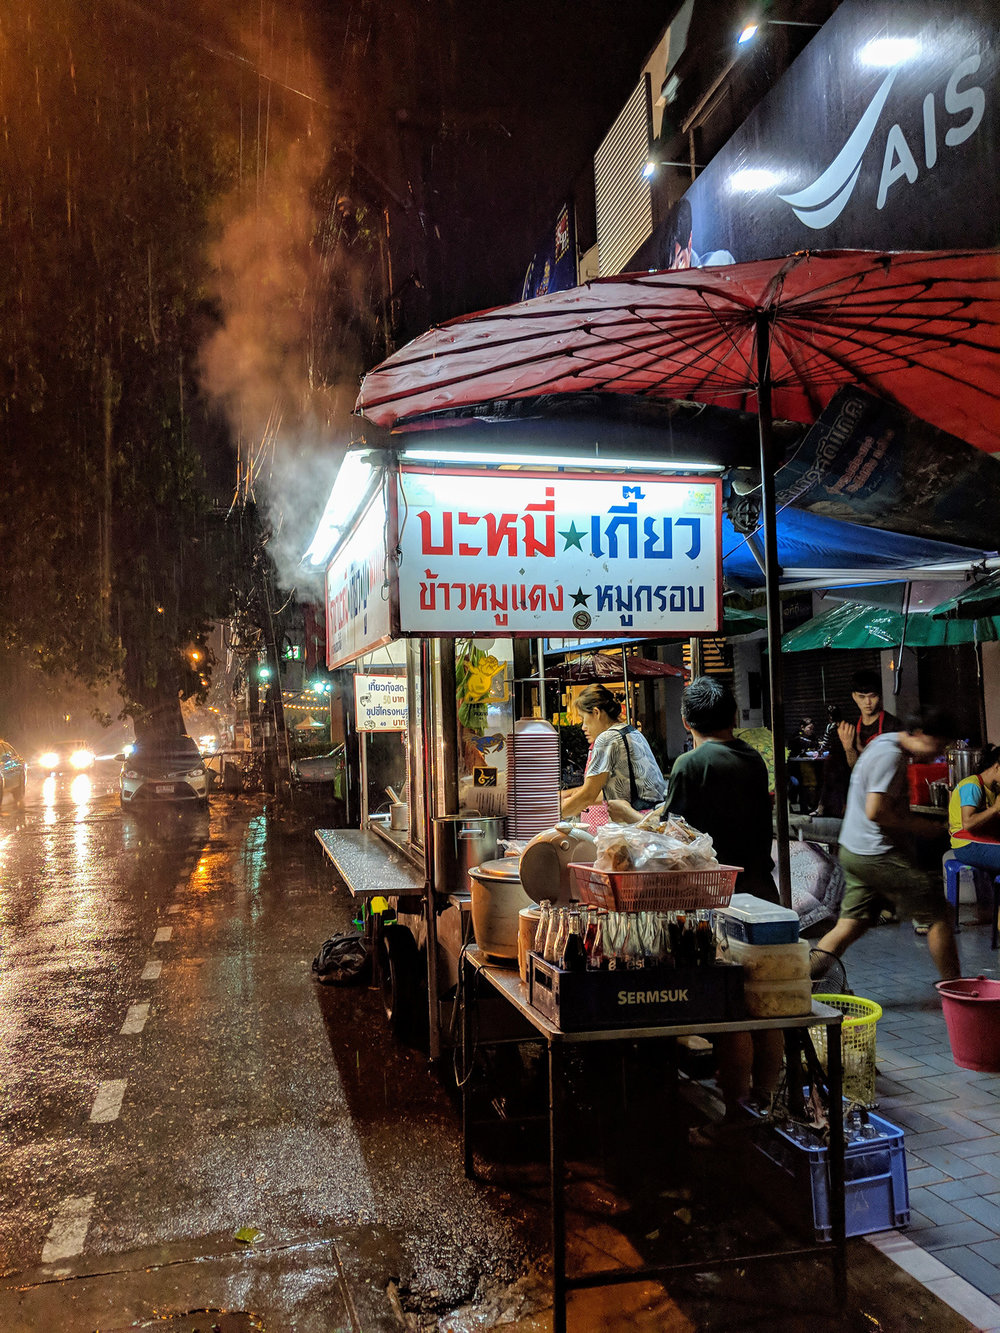 Pouring rain at Chang Phuek Gate night market